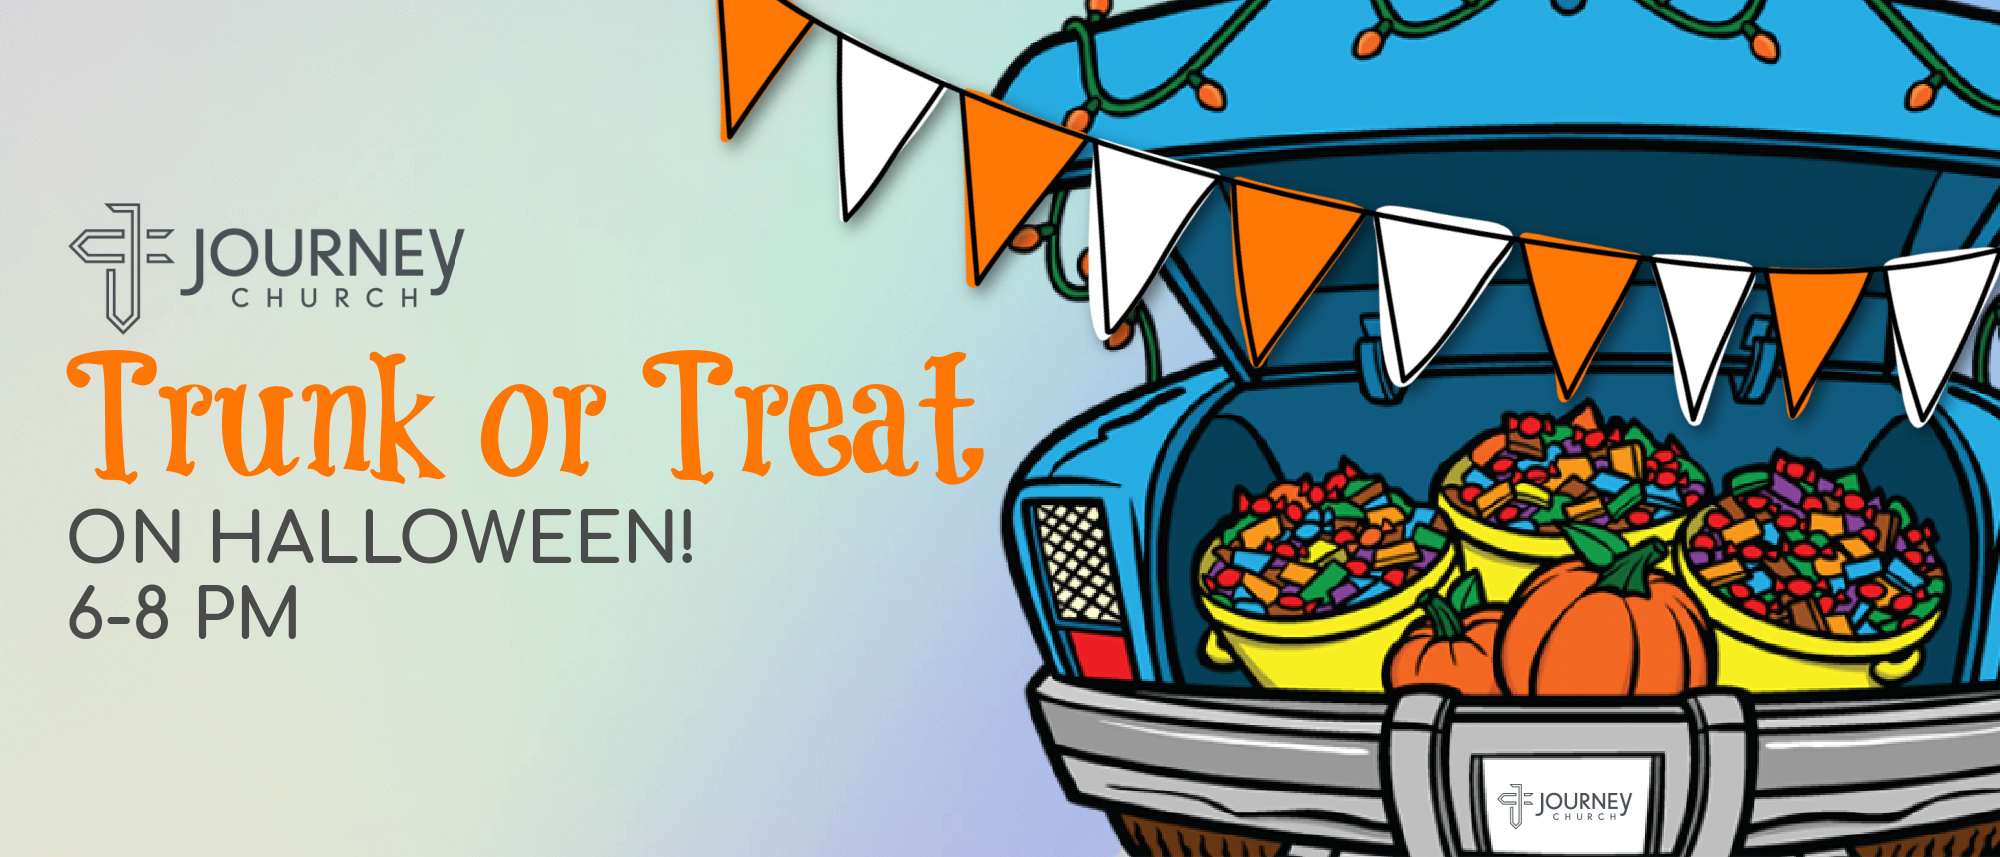 Stop by Journey Church on Halloween night for some fun trunk-or-treating!